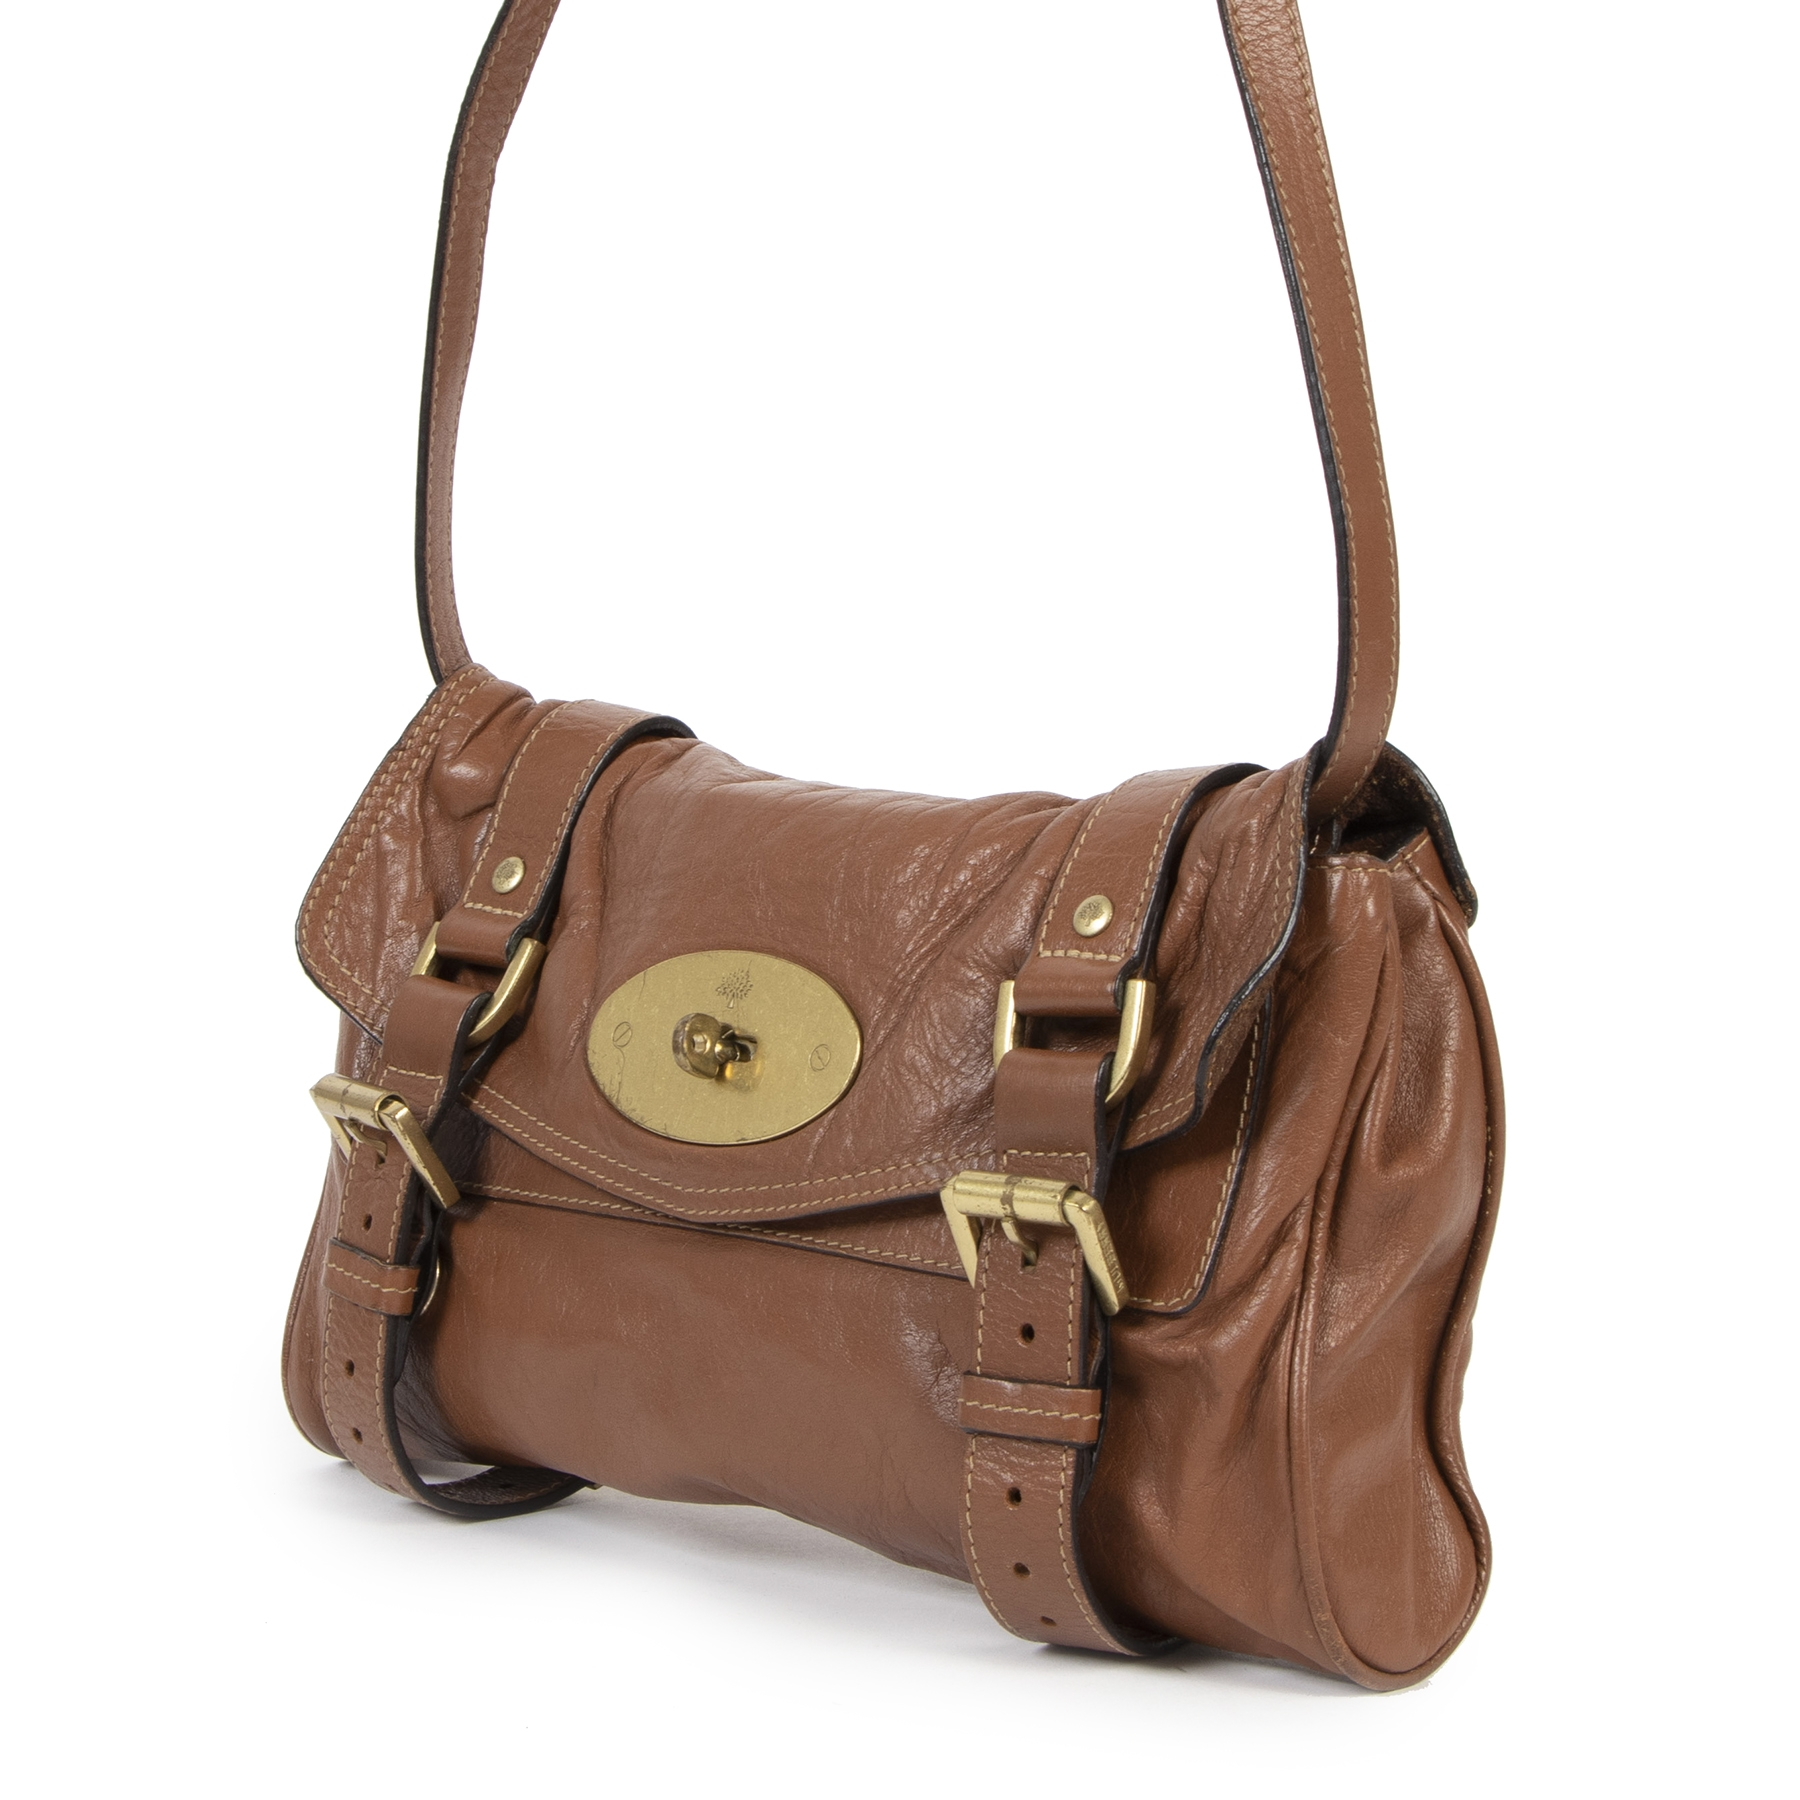 Authentic second-hand vintage Mulberry Small Alexa Crossbody Bag buy online webshop LabelLOV